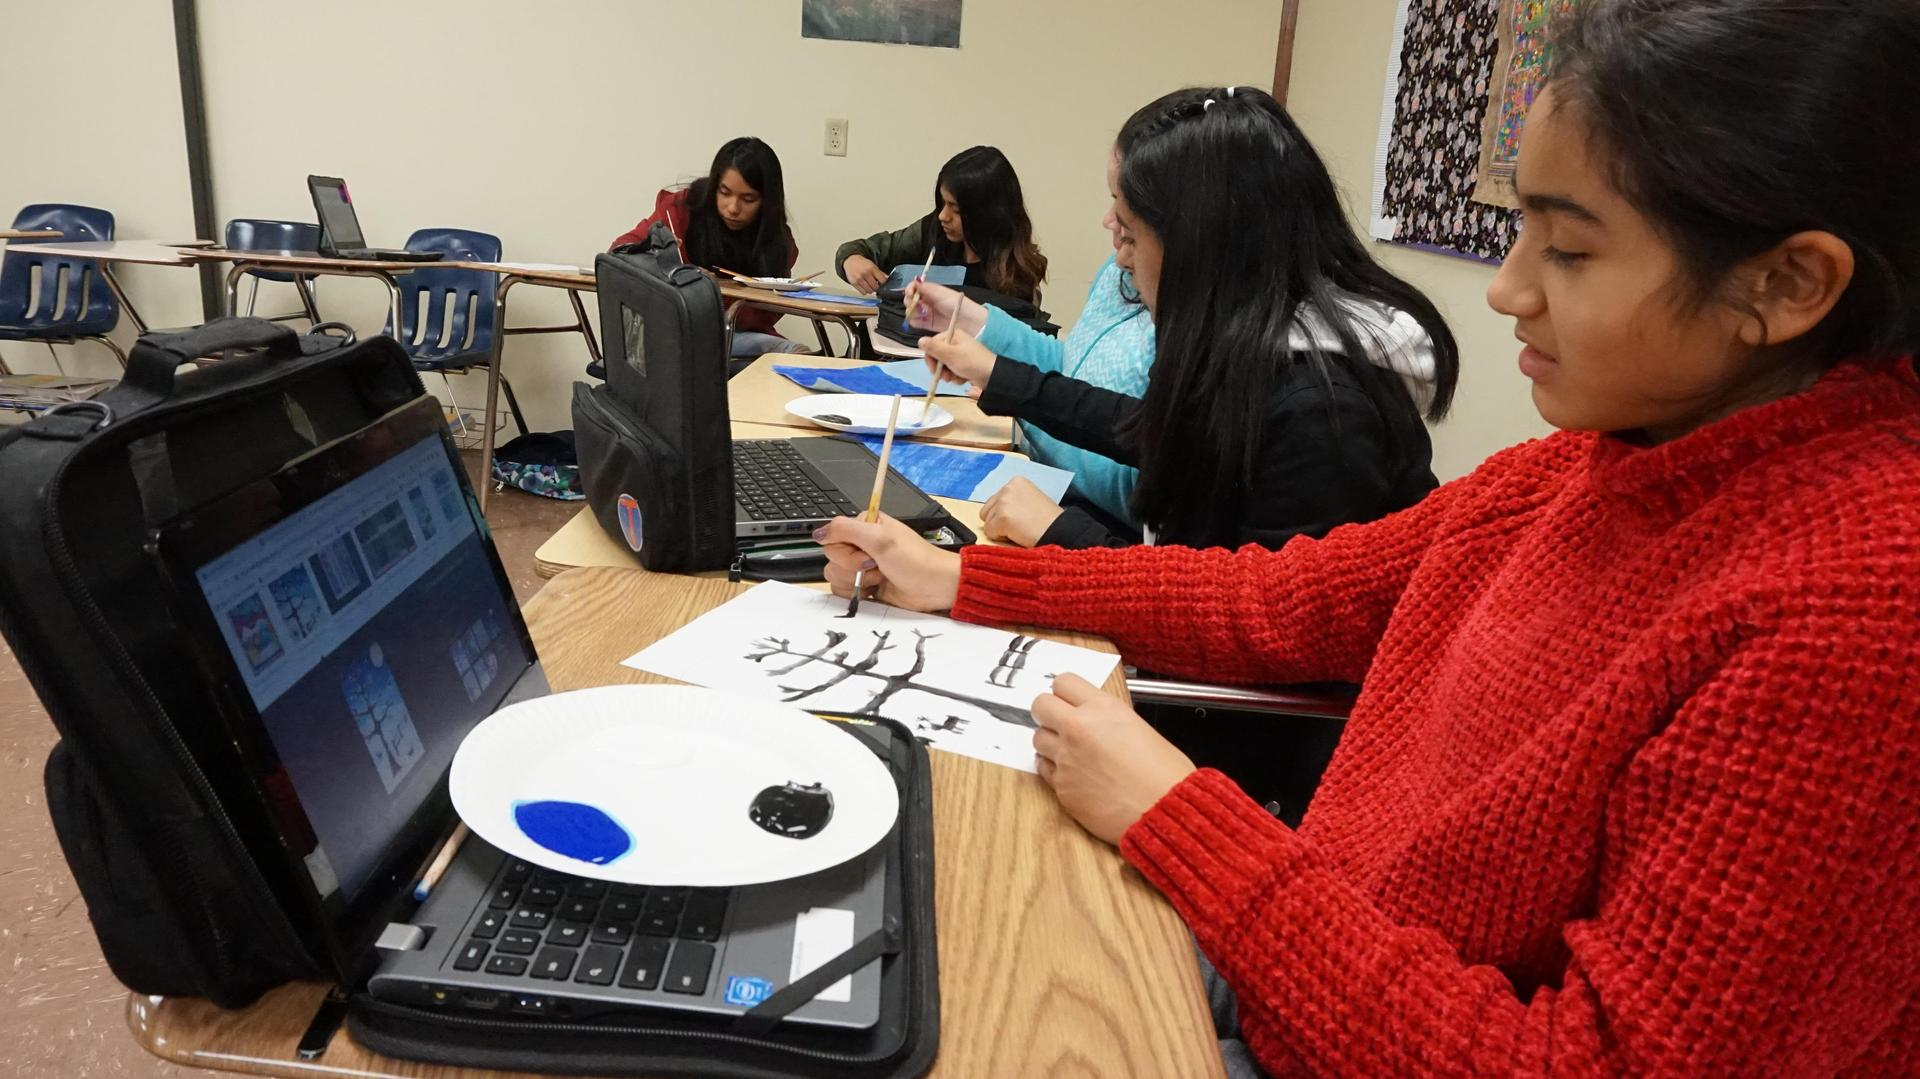 Female student using an image on her computer as an example for her painting